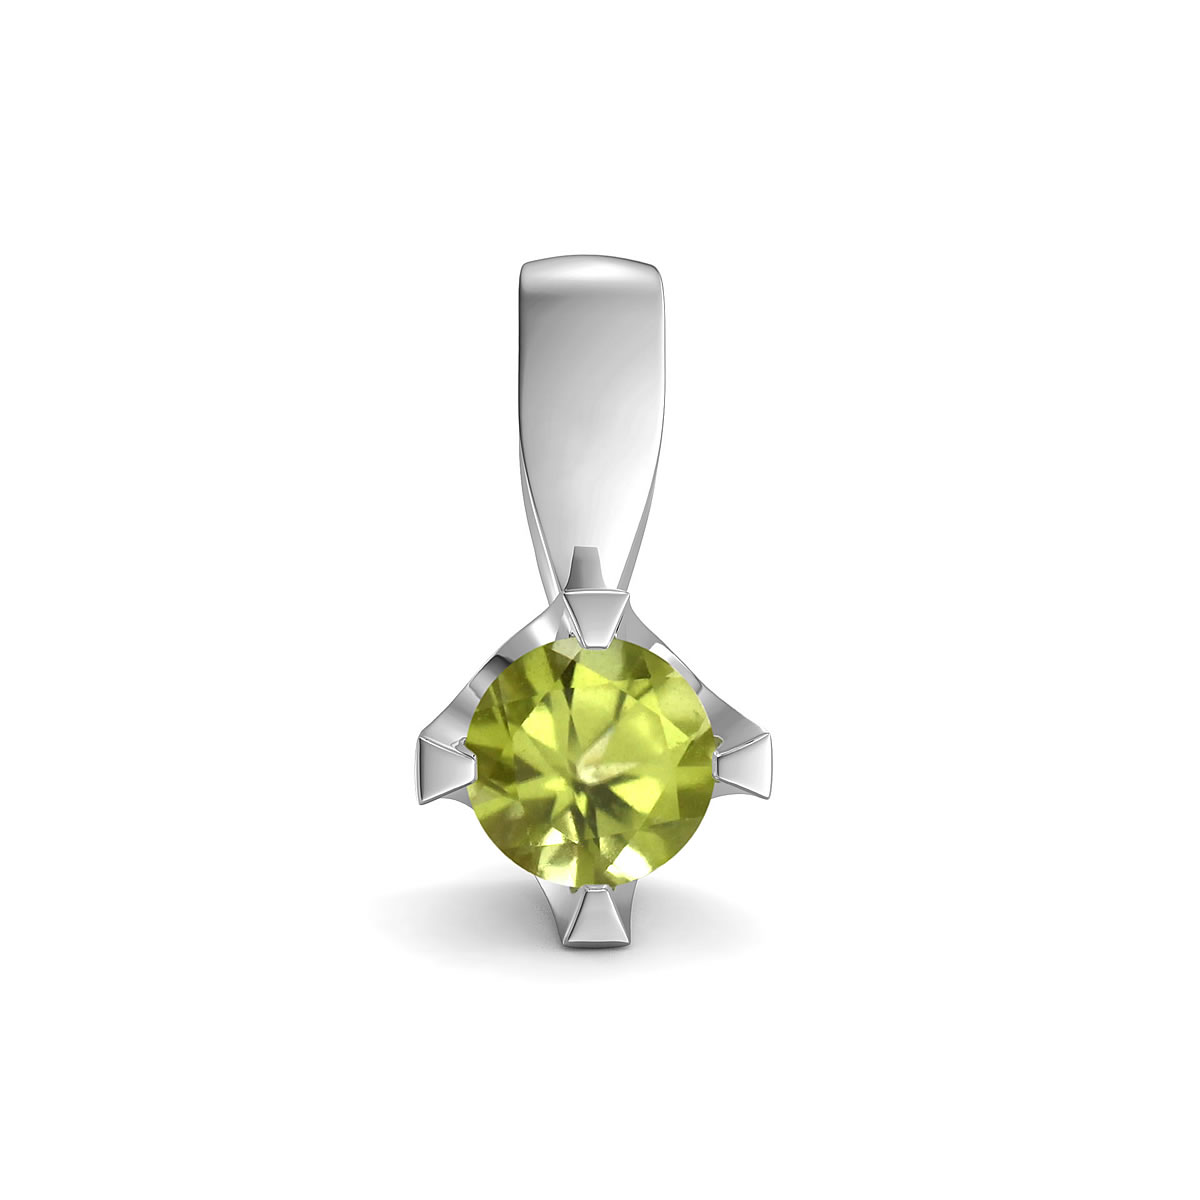 Elegant pendant in sterling silver with a peridot